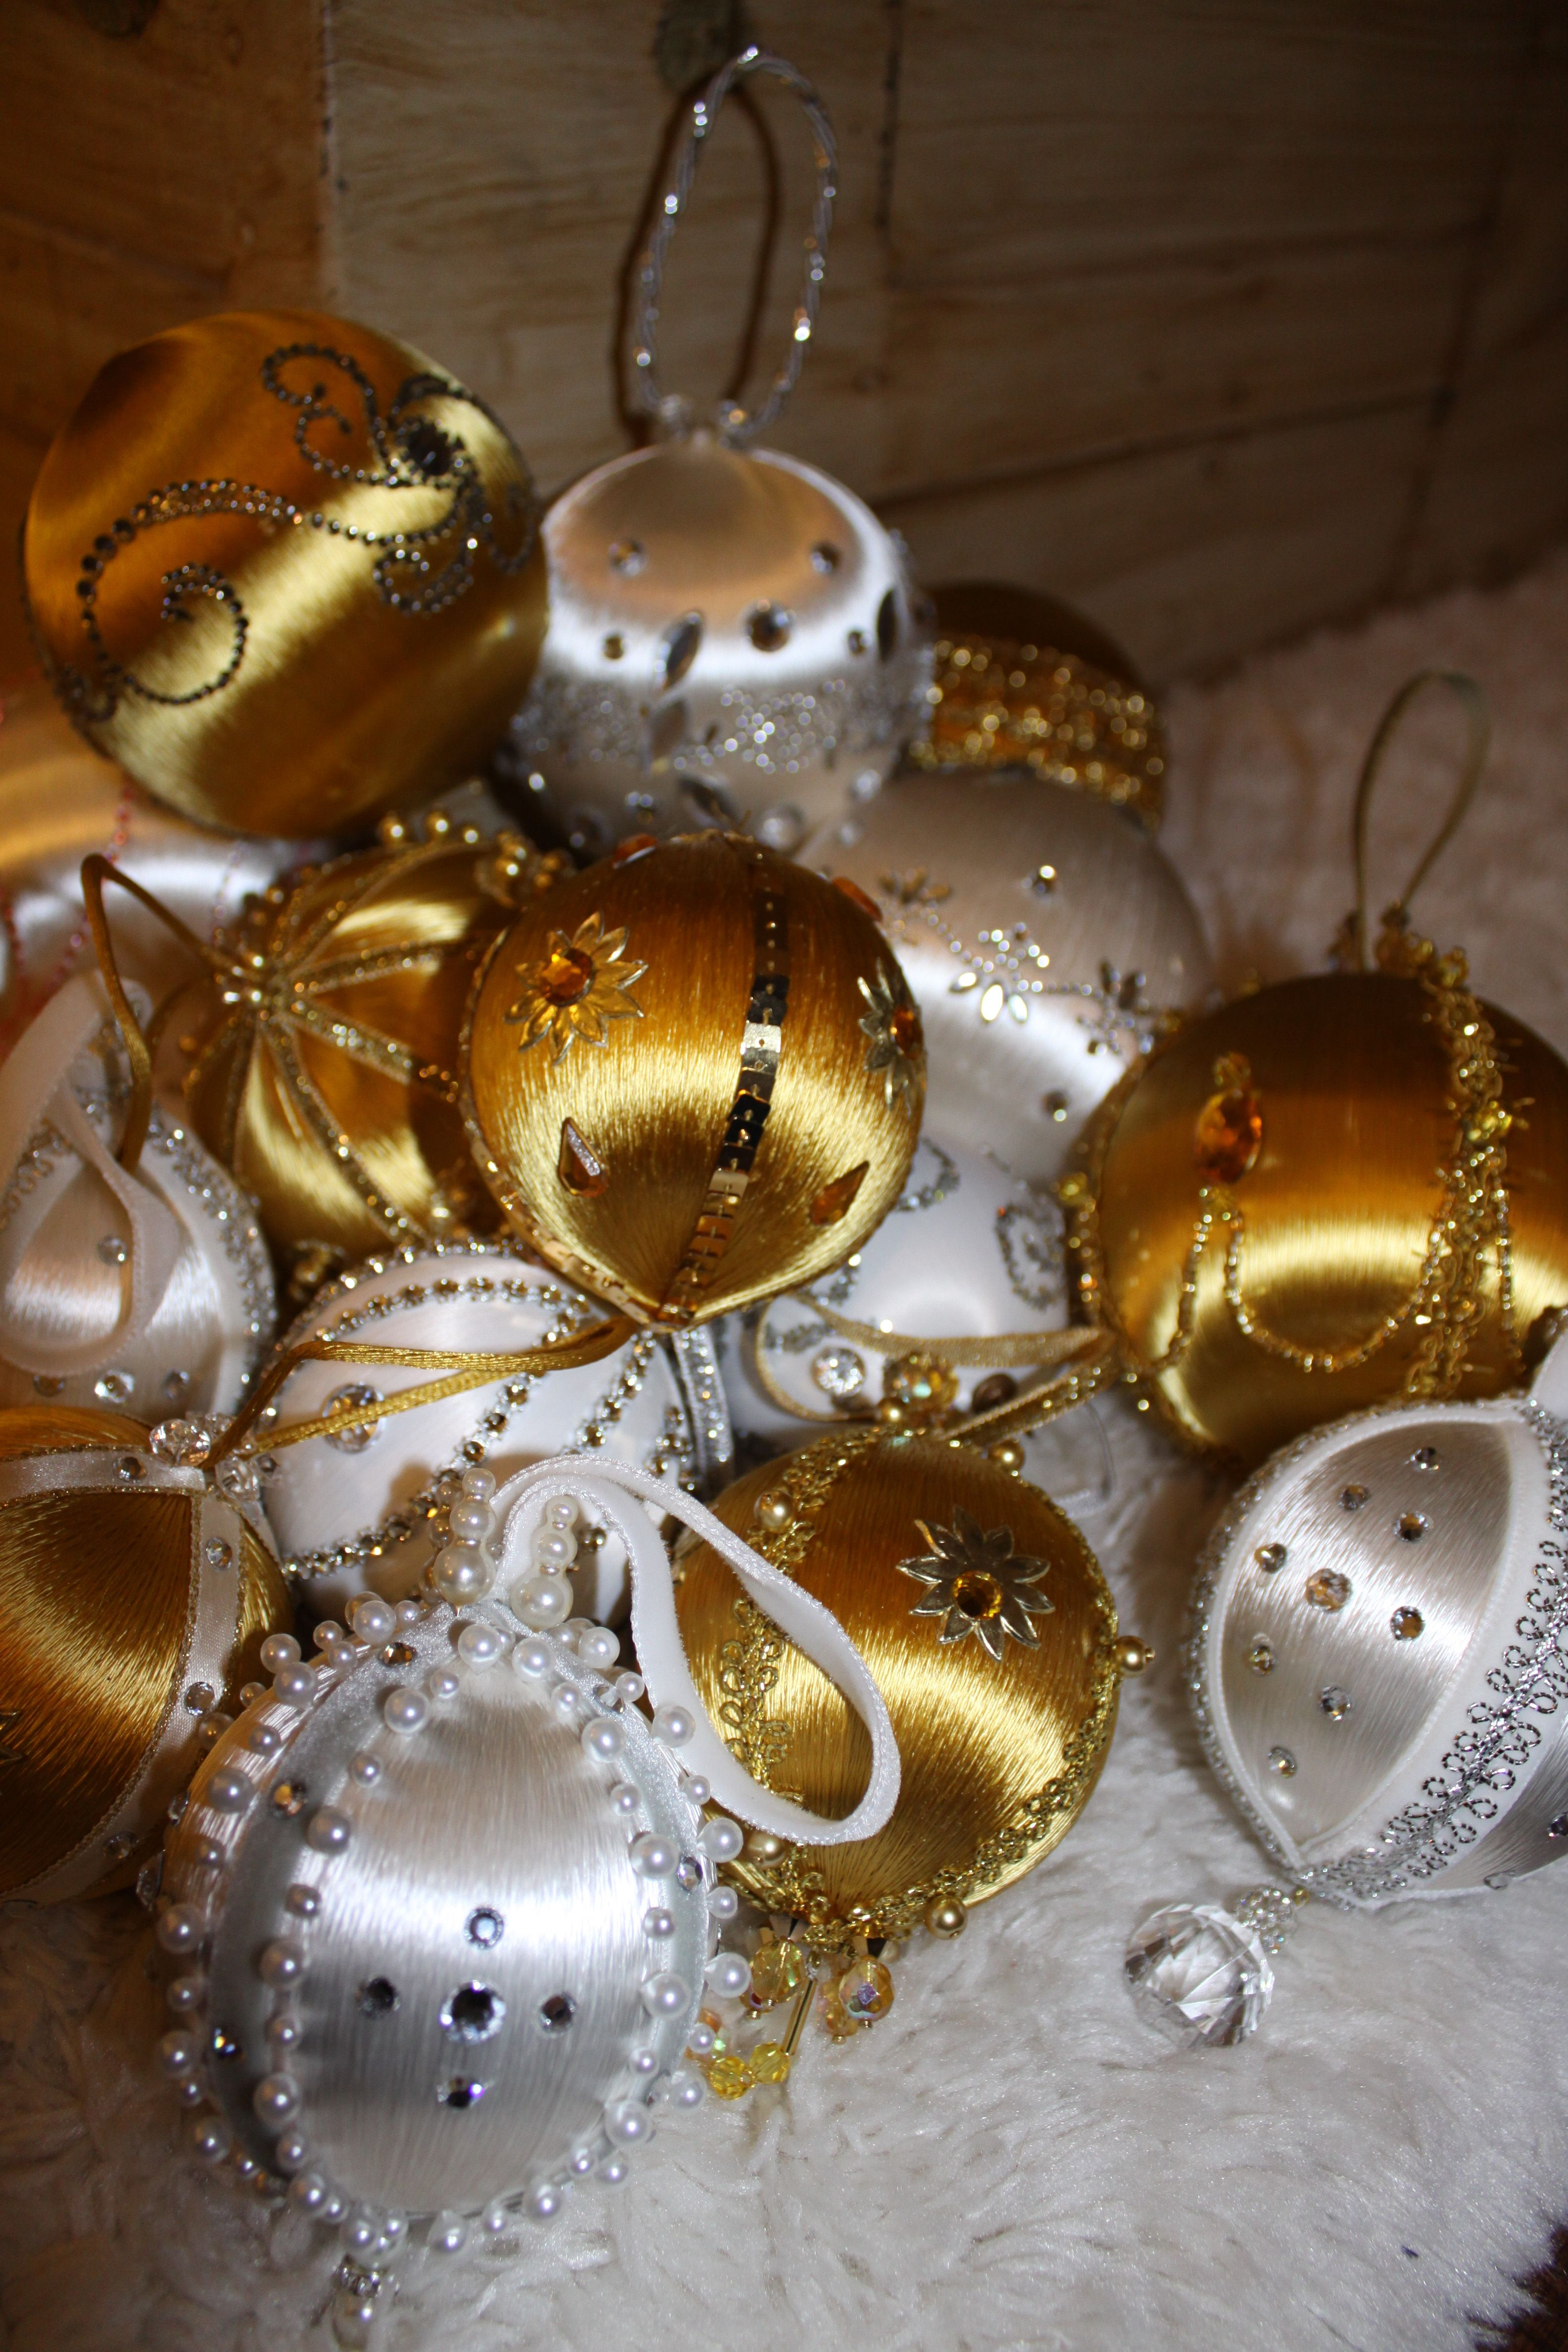 Vintage Christmas Satin Ball Ornaments Just Like My Great Aunt Use To Make Grandma Ornament Christmas Bulbs How To Make Necklaces